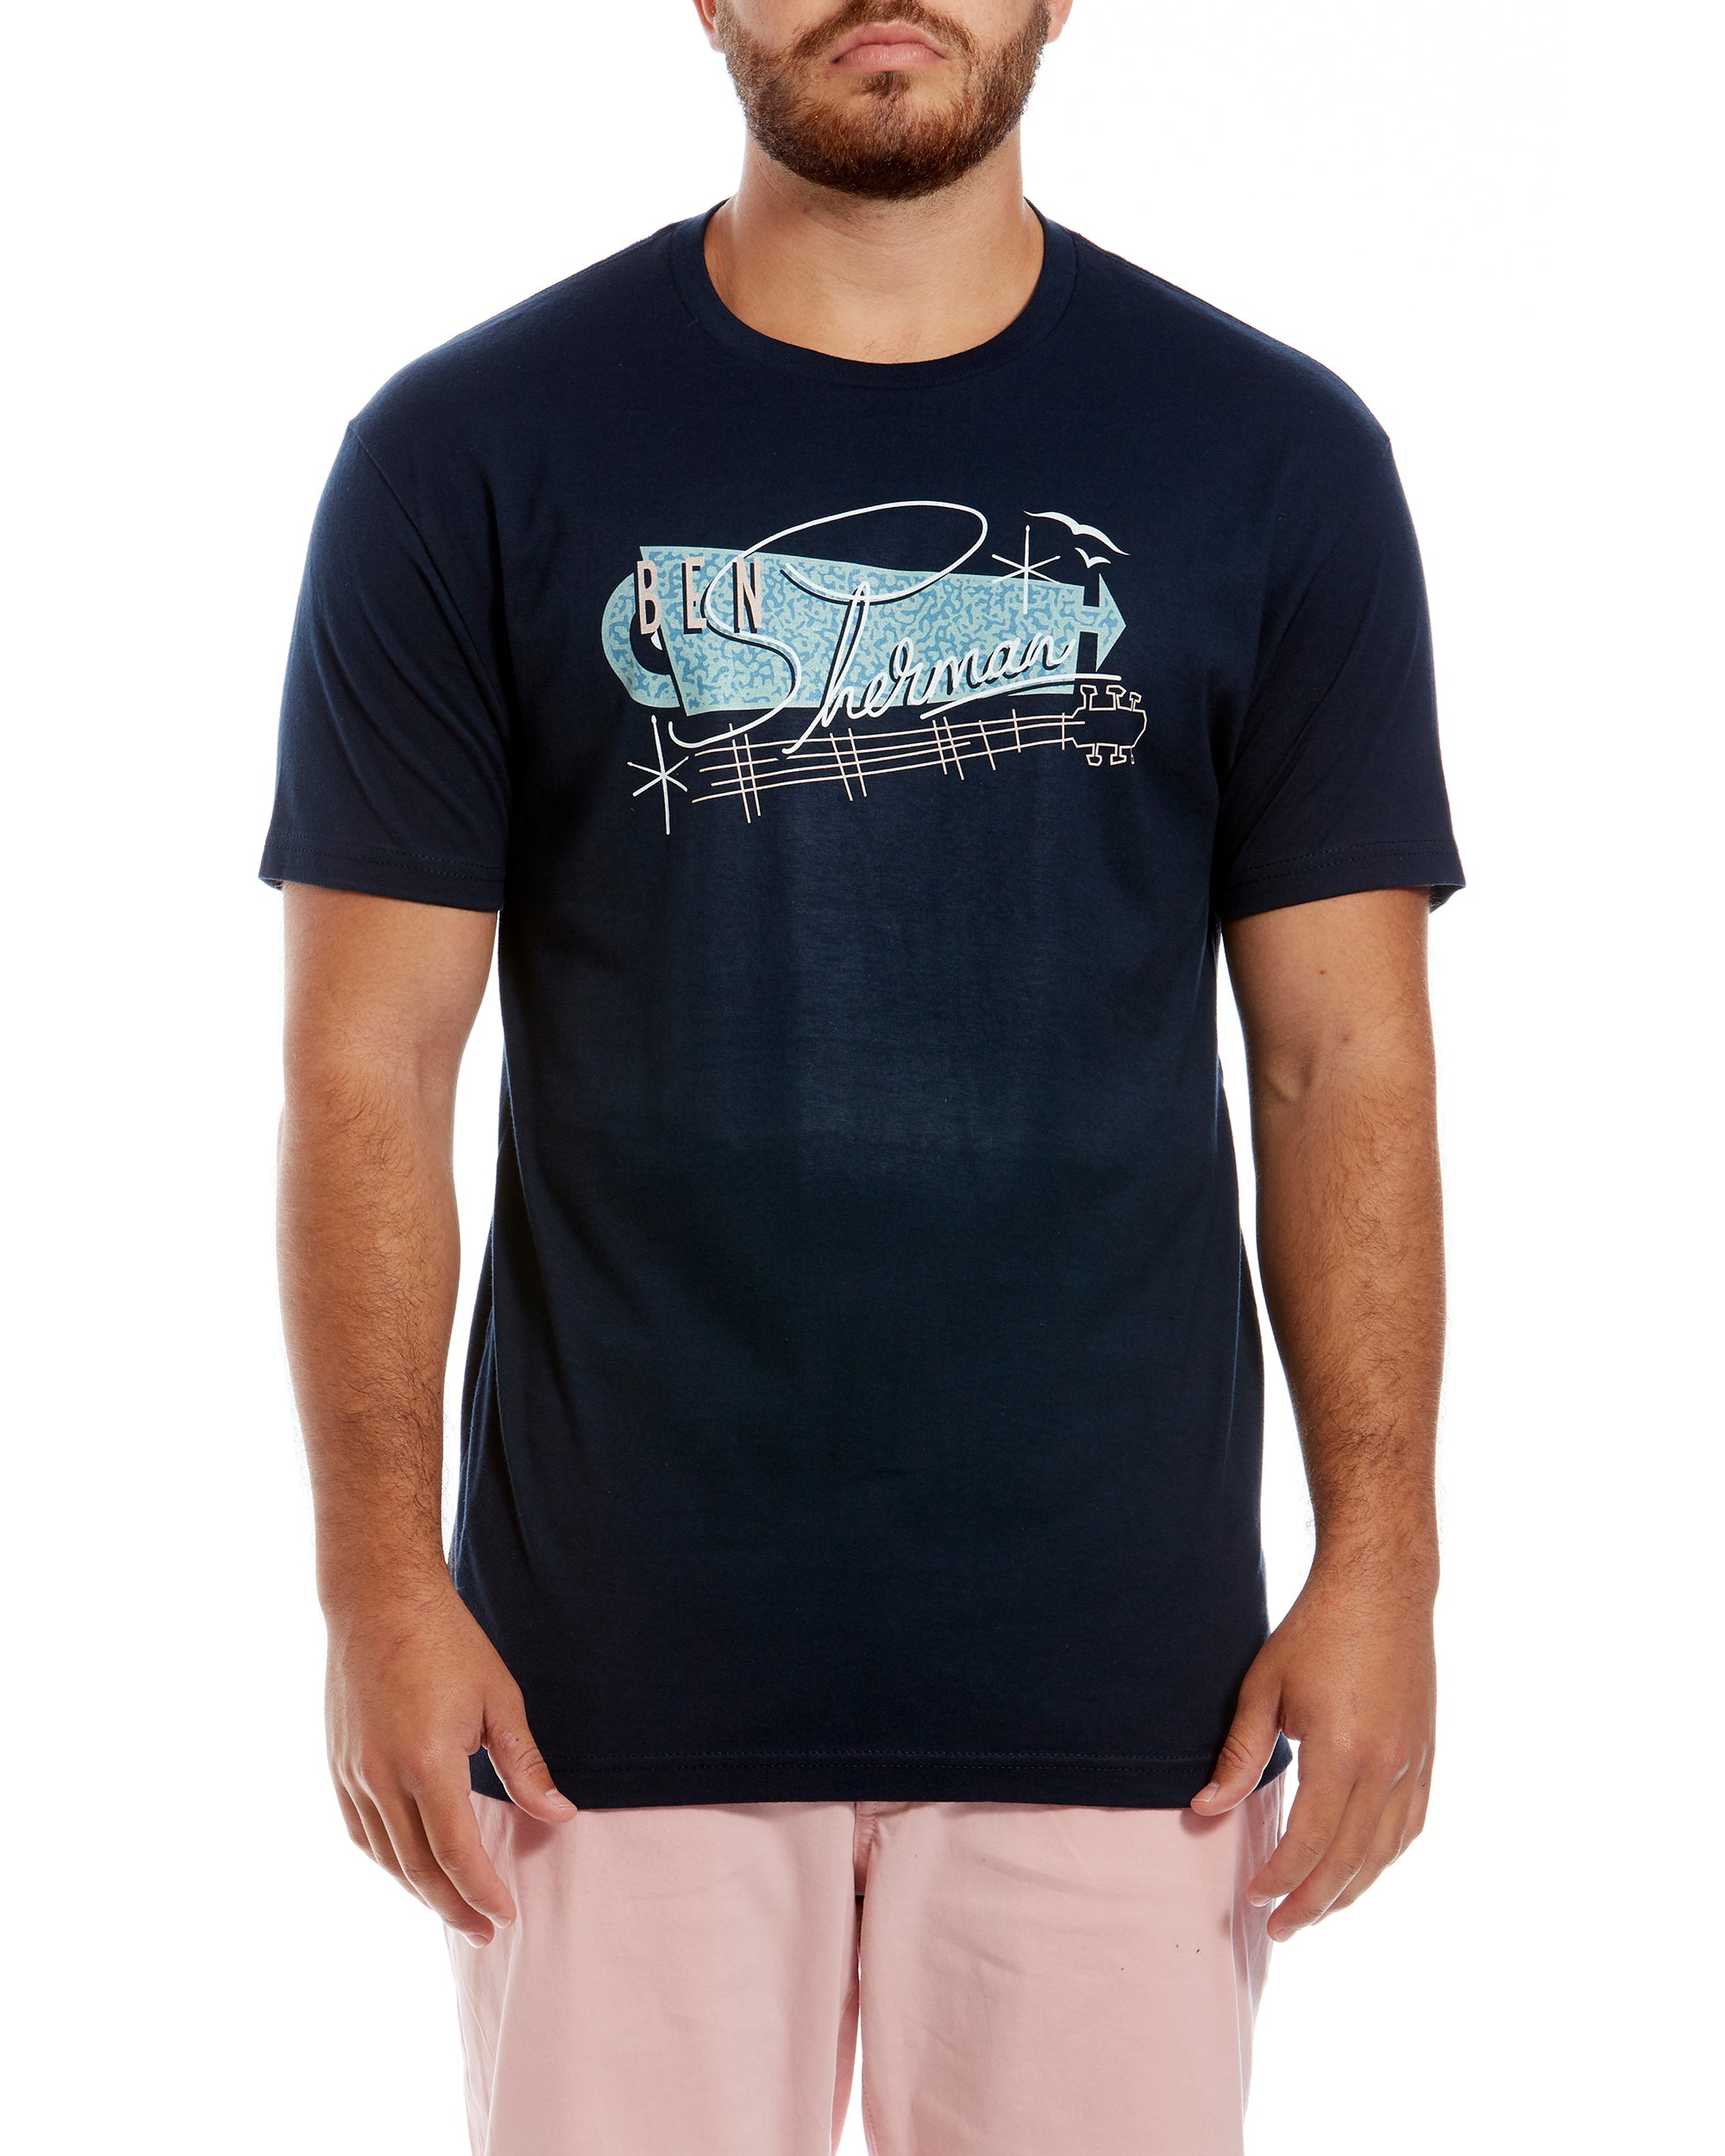 Springs Resort Graphic Tee - Midnight Navy